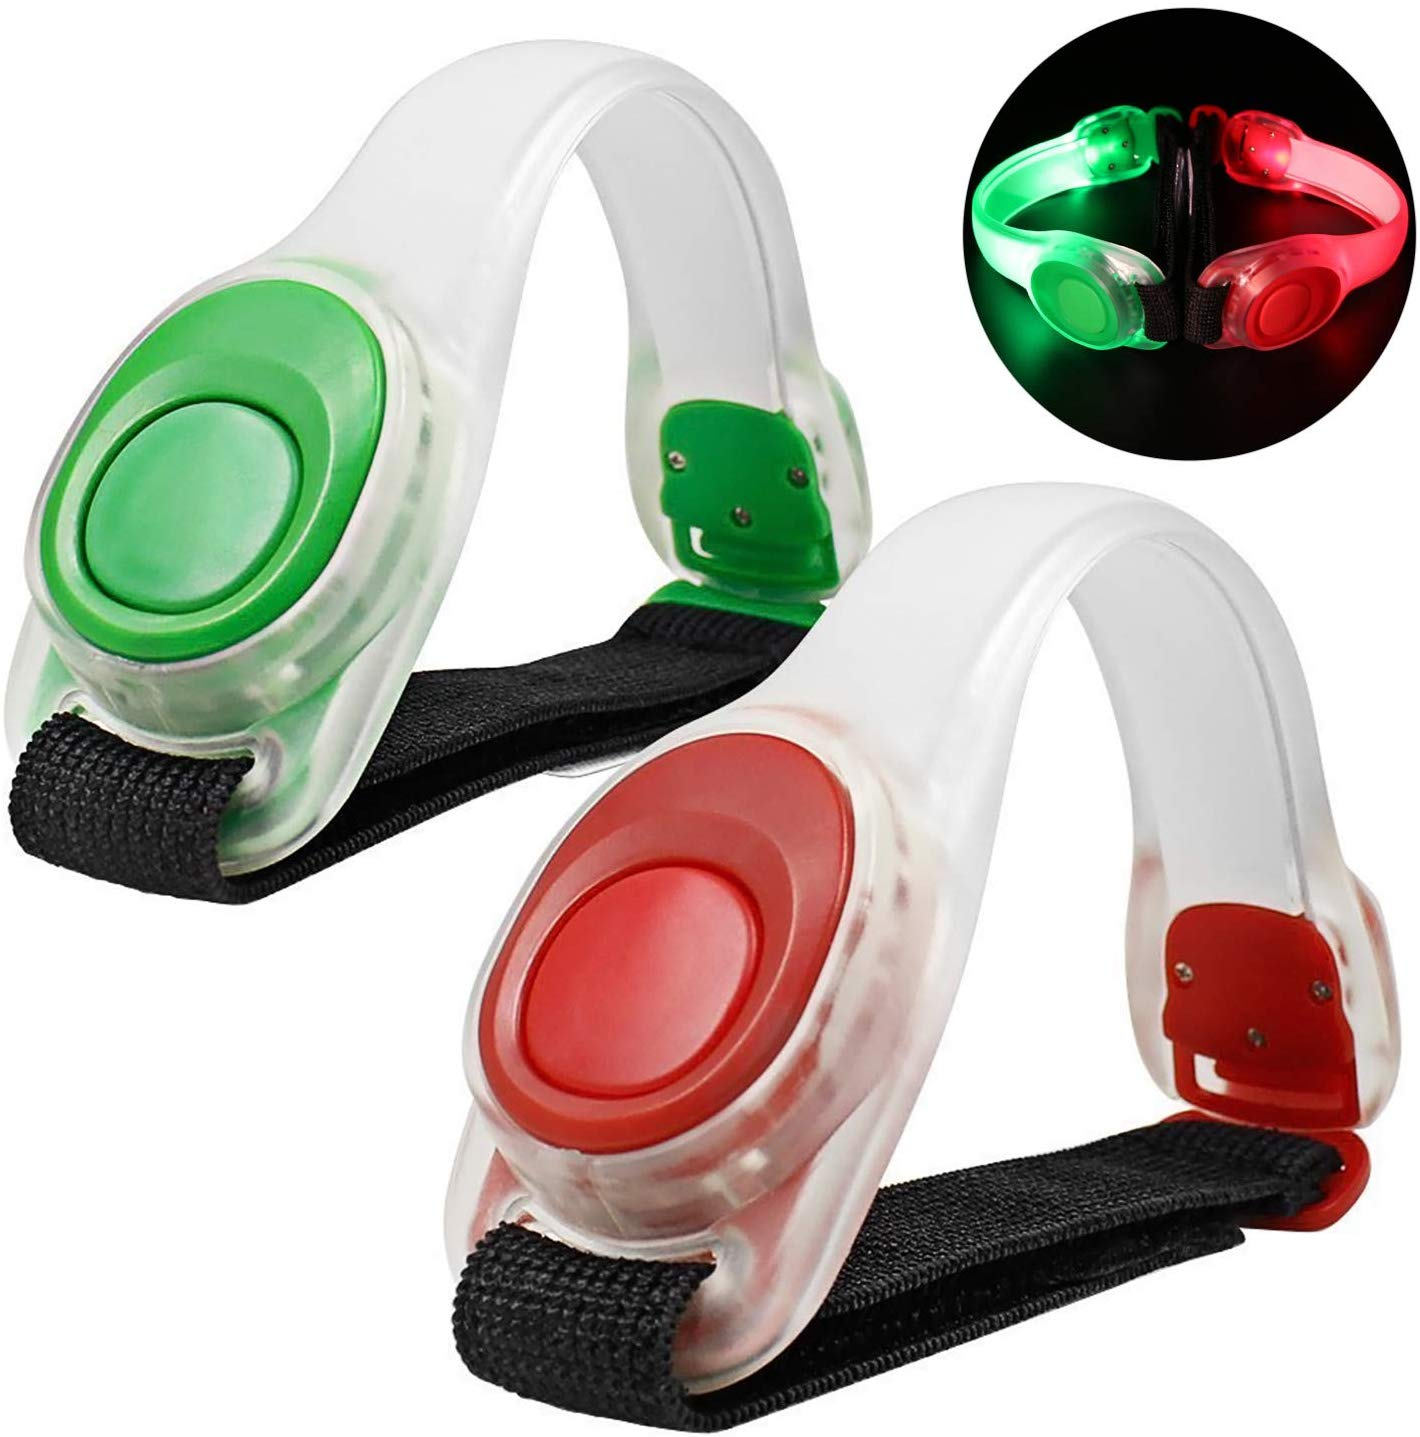 N NEWKOIN Running LED Armband Runner Light Sport Reflective Band Jogging Light